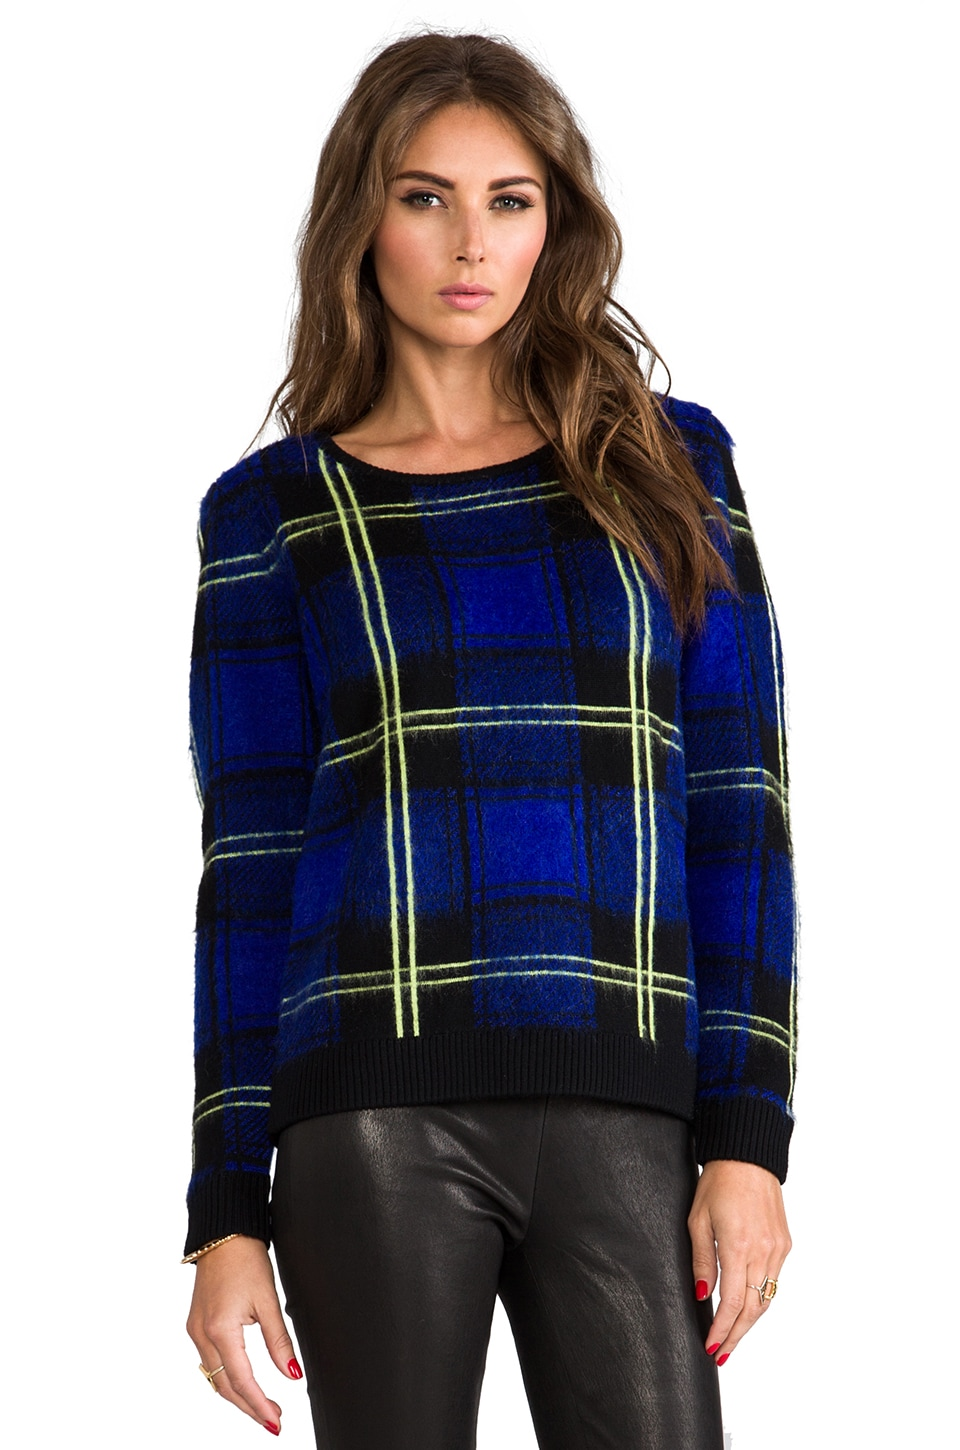 MILLY RUNWAY Knit Washed Plaid Jacquard Sweater in Violet Multi